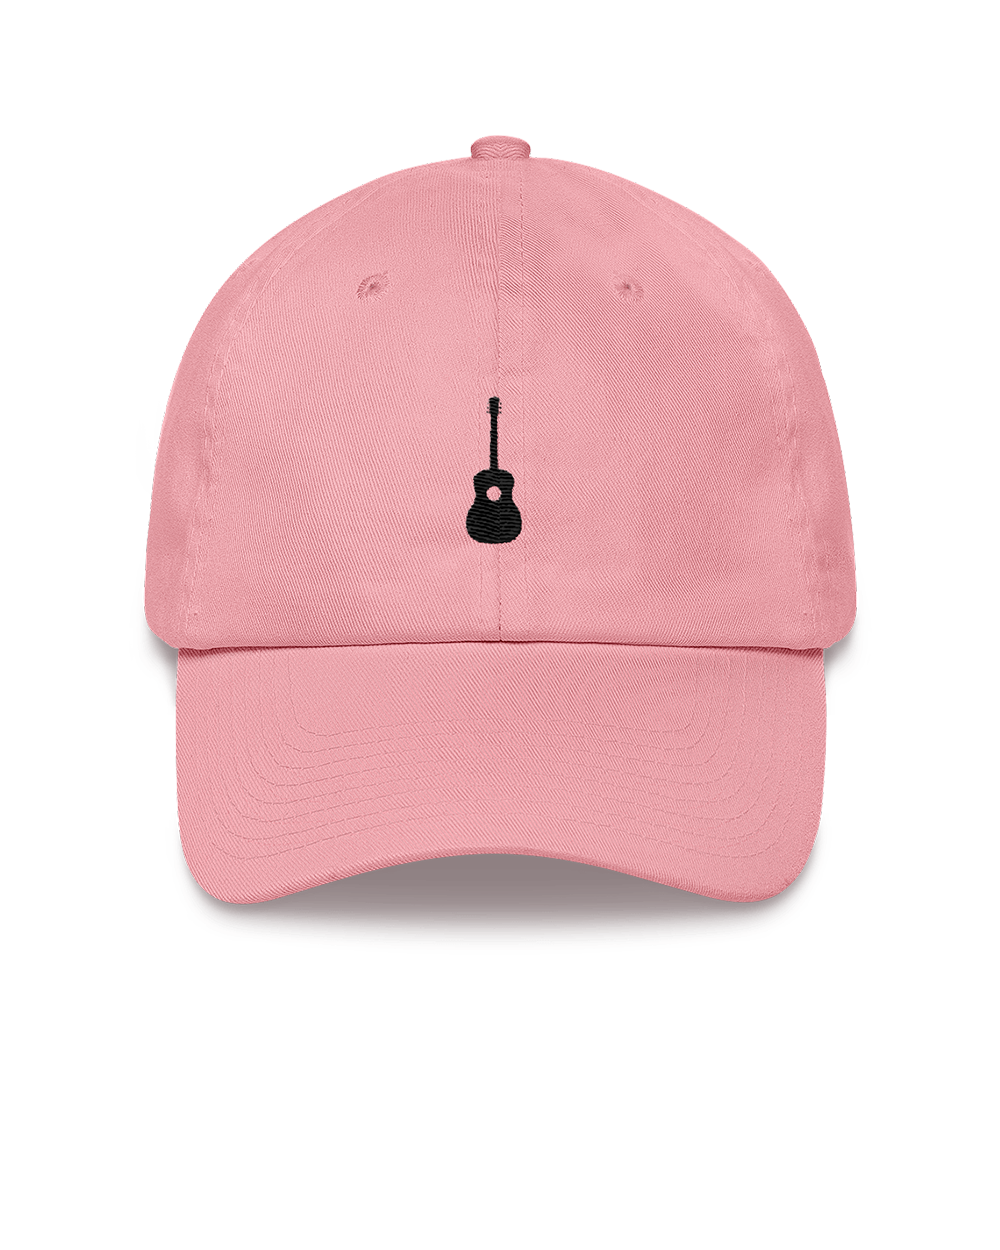 Guitar Dad Hat - Pink